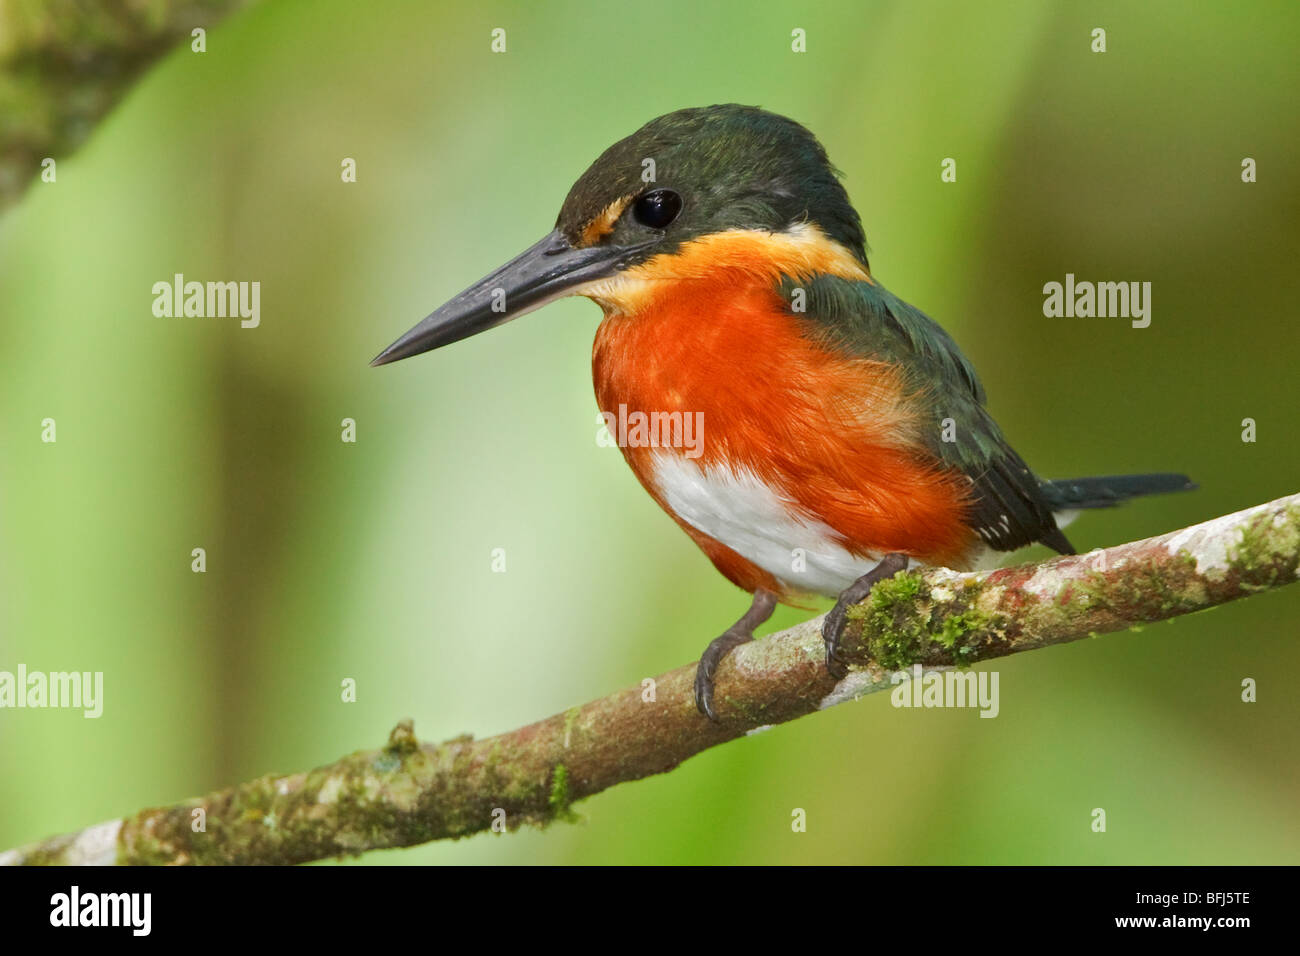 American Pygmy Kingfisher (Chloroceryle aenea) perched on a branch near the Napo River in Amazonian Ecuador. - Stock Image